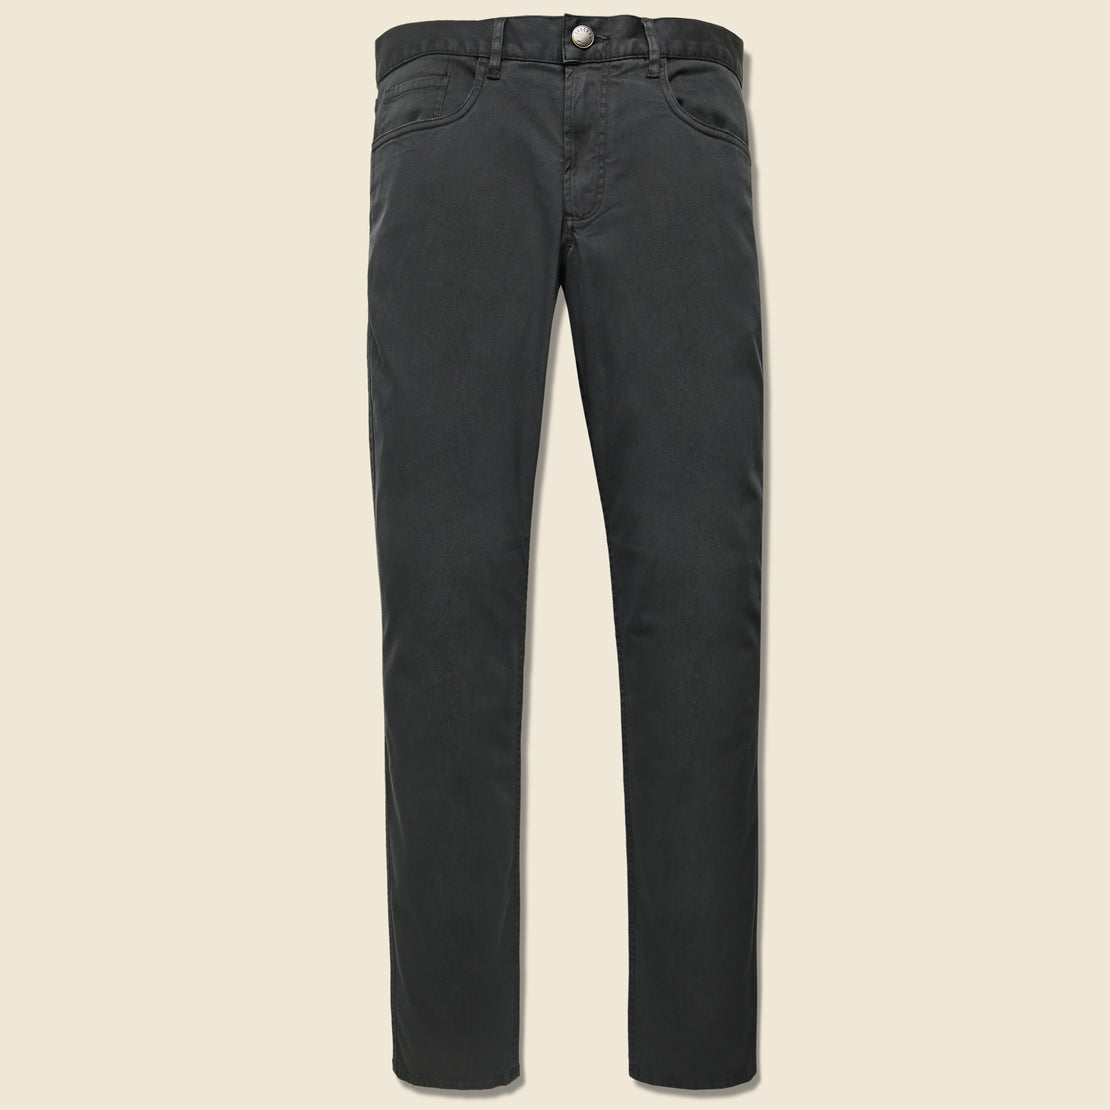 Faherty Comfort Twill Jean - Washed Black